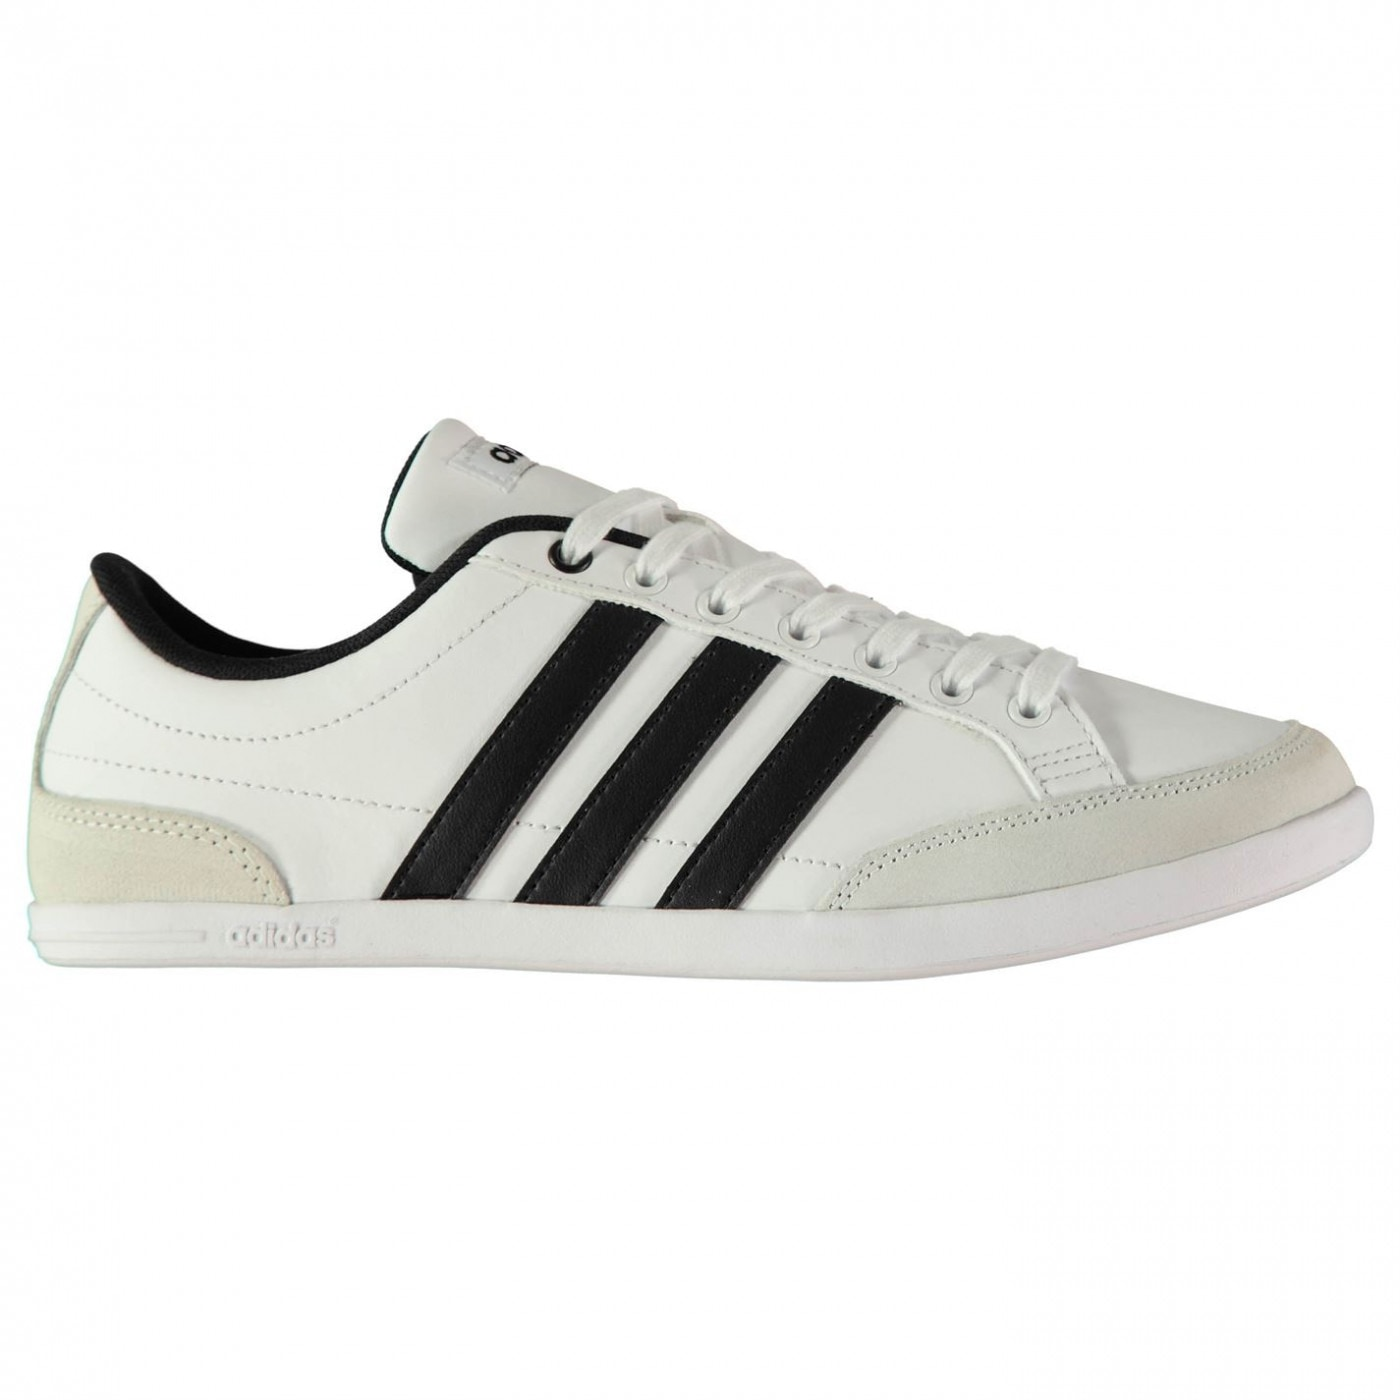 adidas caflaire mens trainers off 65% -